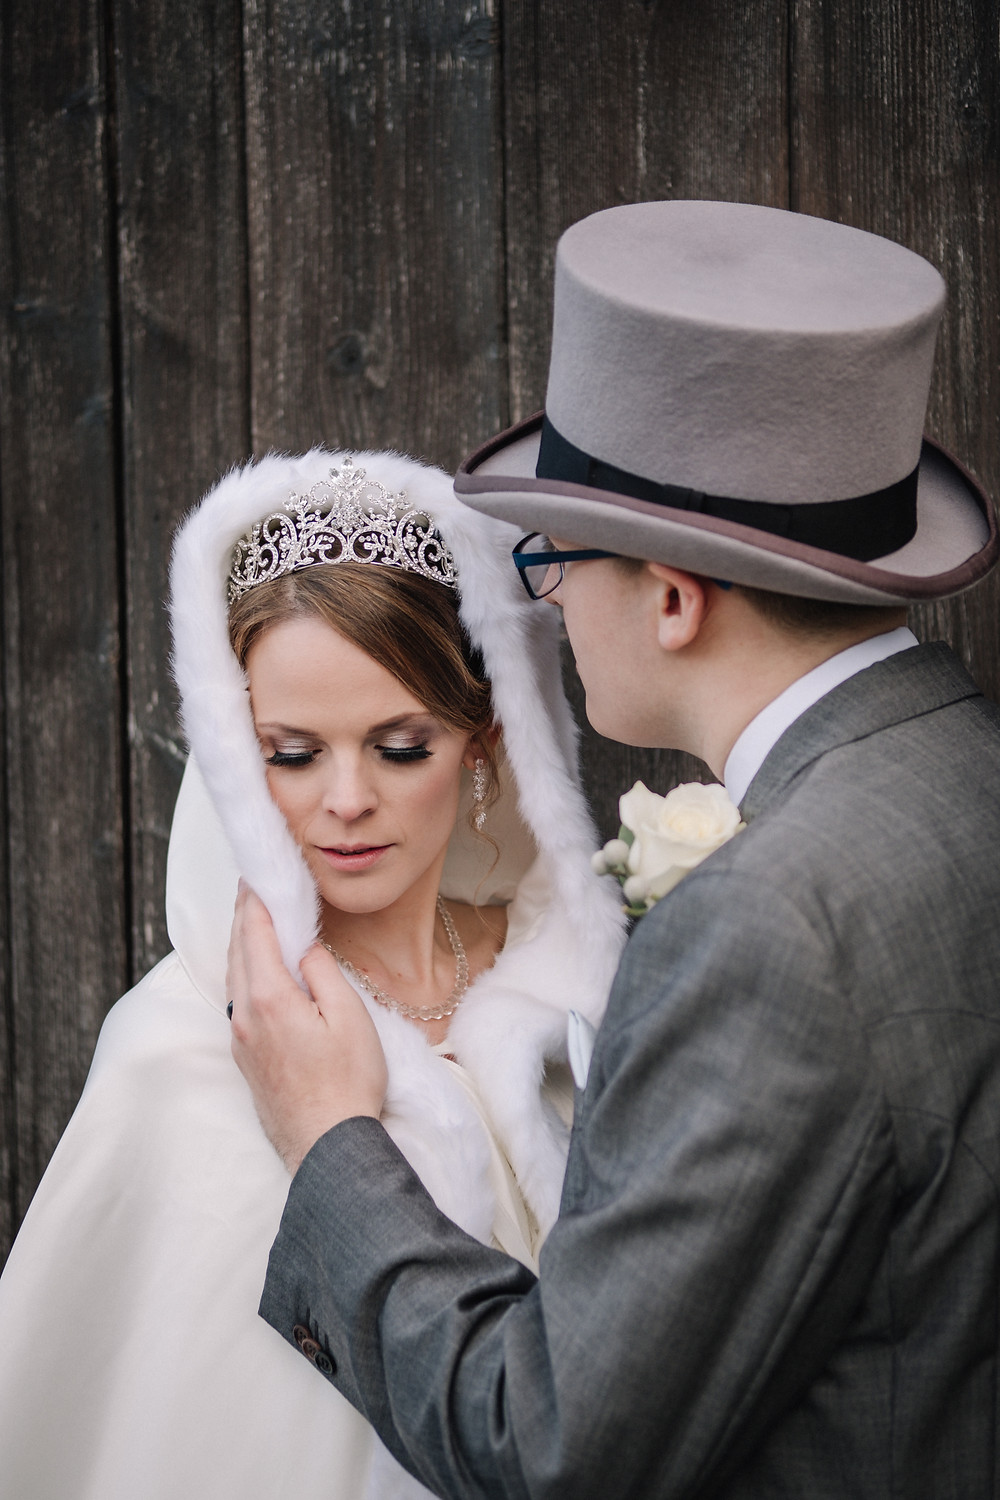 The Bride & Groom, by Nessworthy Photography